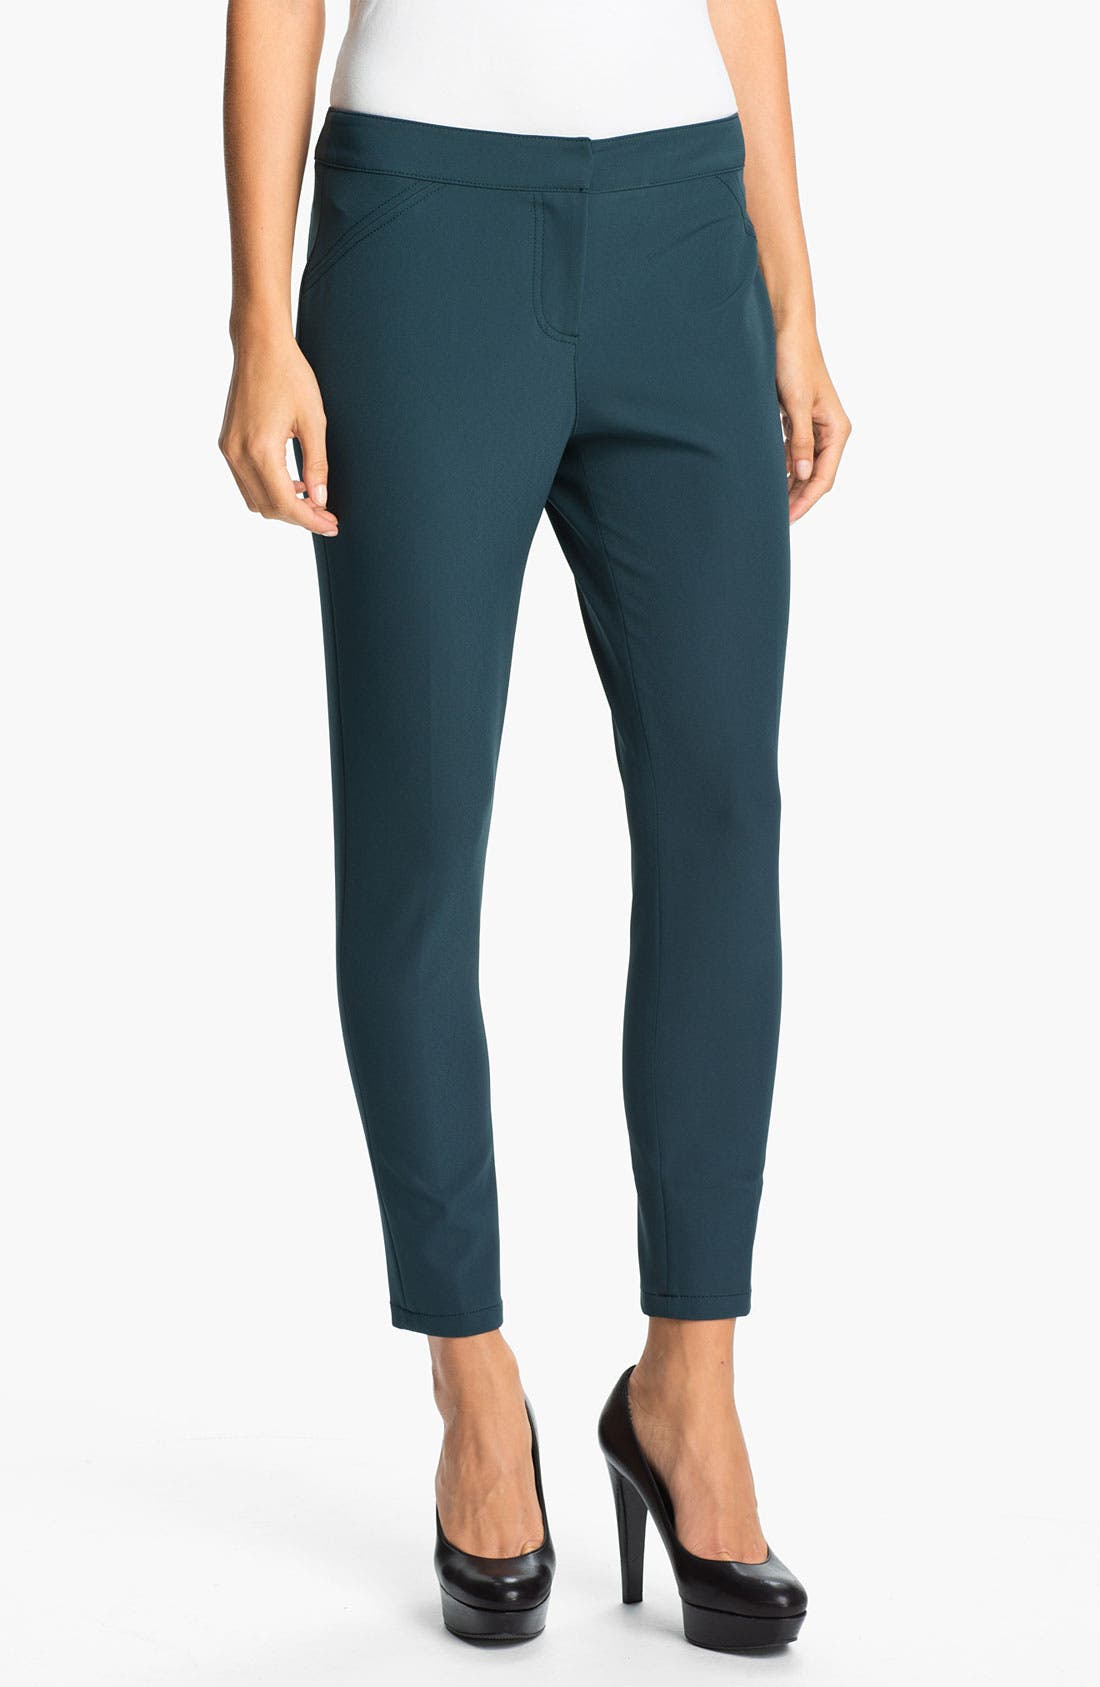 Alternate Image 1 Selected - Kenneth Cole New York 'Paige' Tech Pants (Petite)